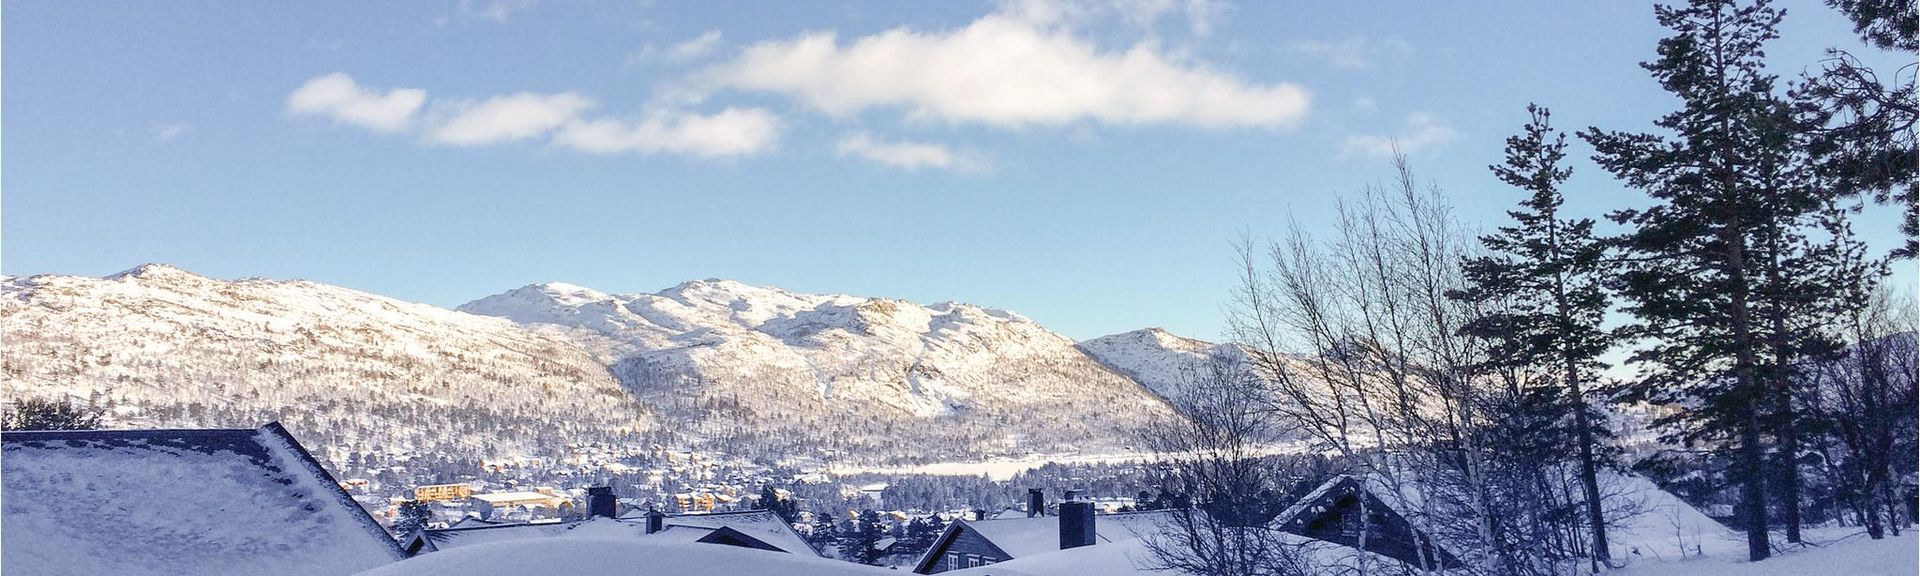 Hovden i Setesdal, Norway